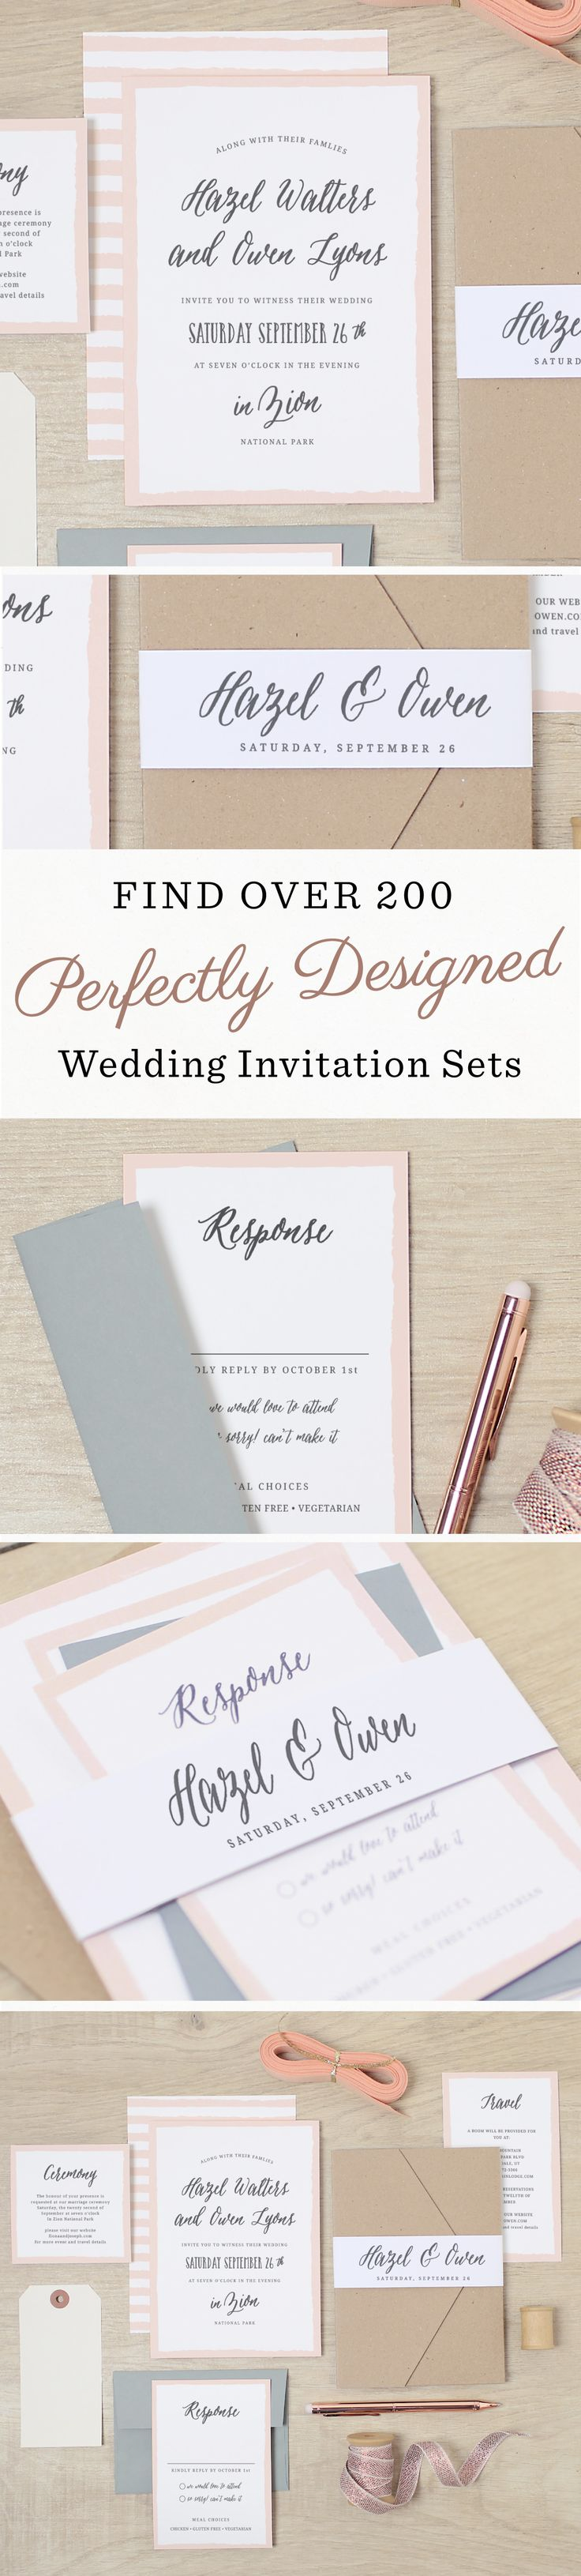 Create the perfect wedding invitation set with 200 unique designs that offer matching save the dates, wedding invitations,  enclosure cards, wedding menus, programs, and thanks you cards. Then make it stand out with accessories such as pockets, belly bands and logo squares.